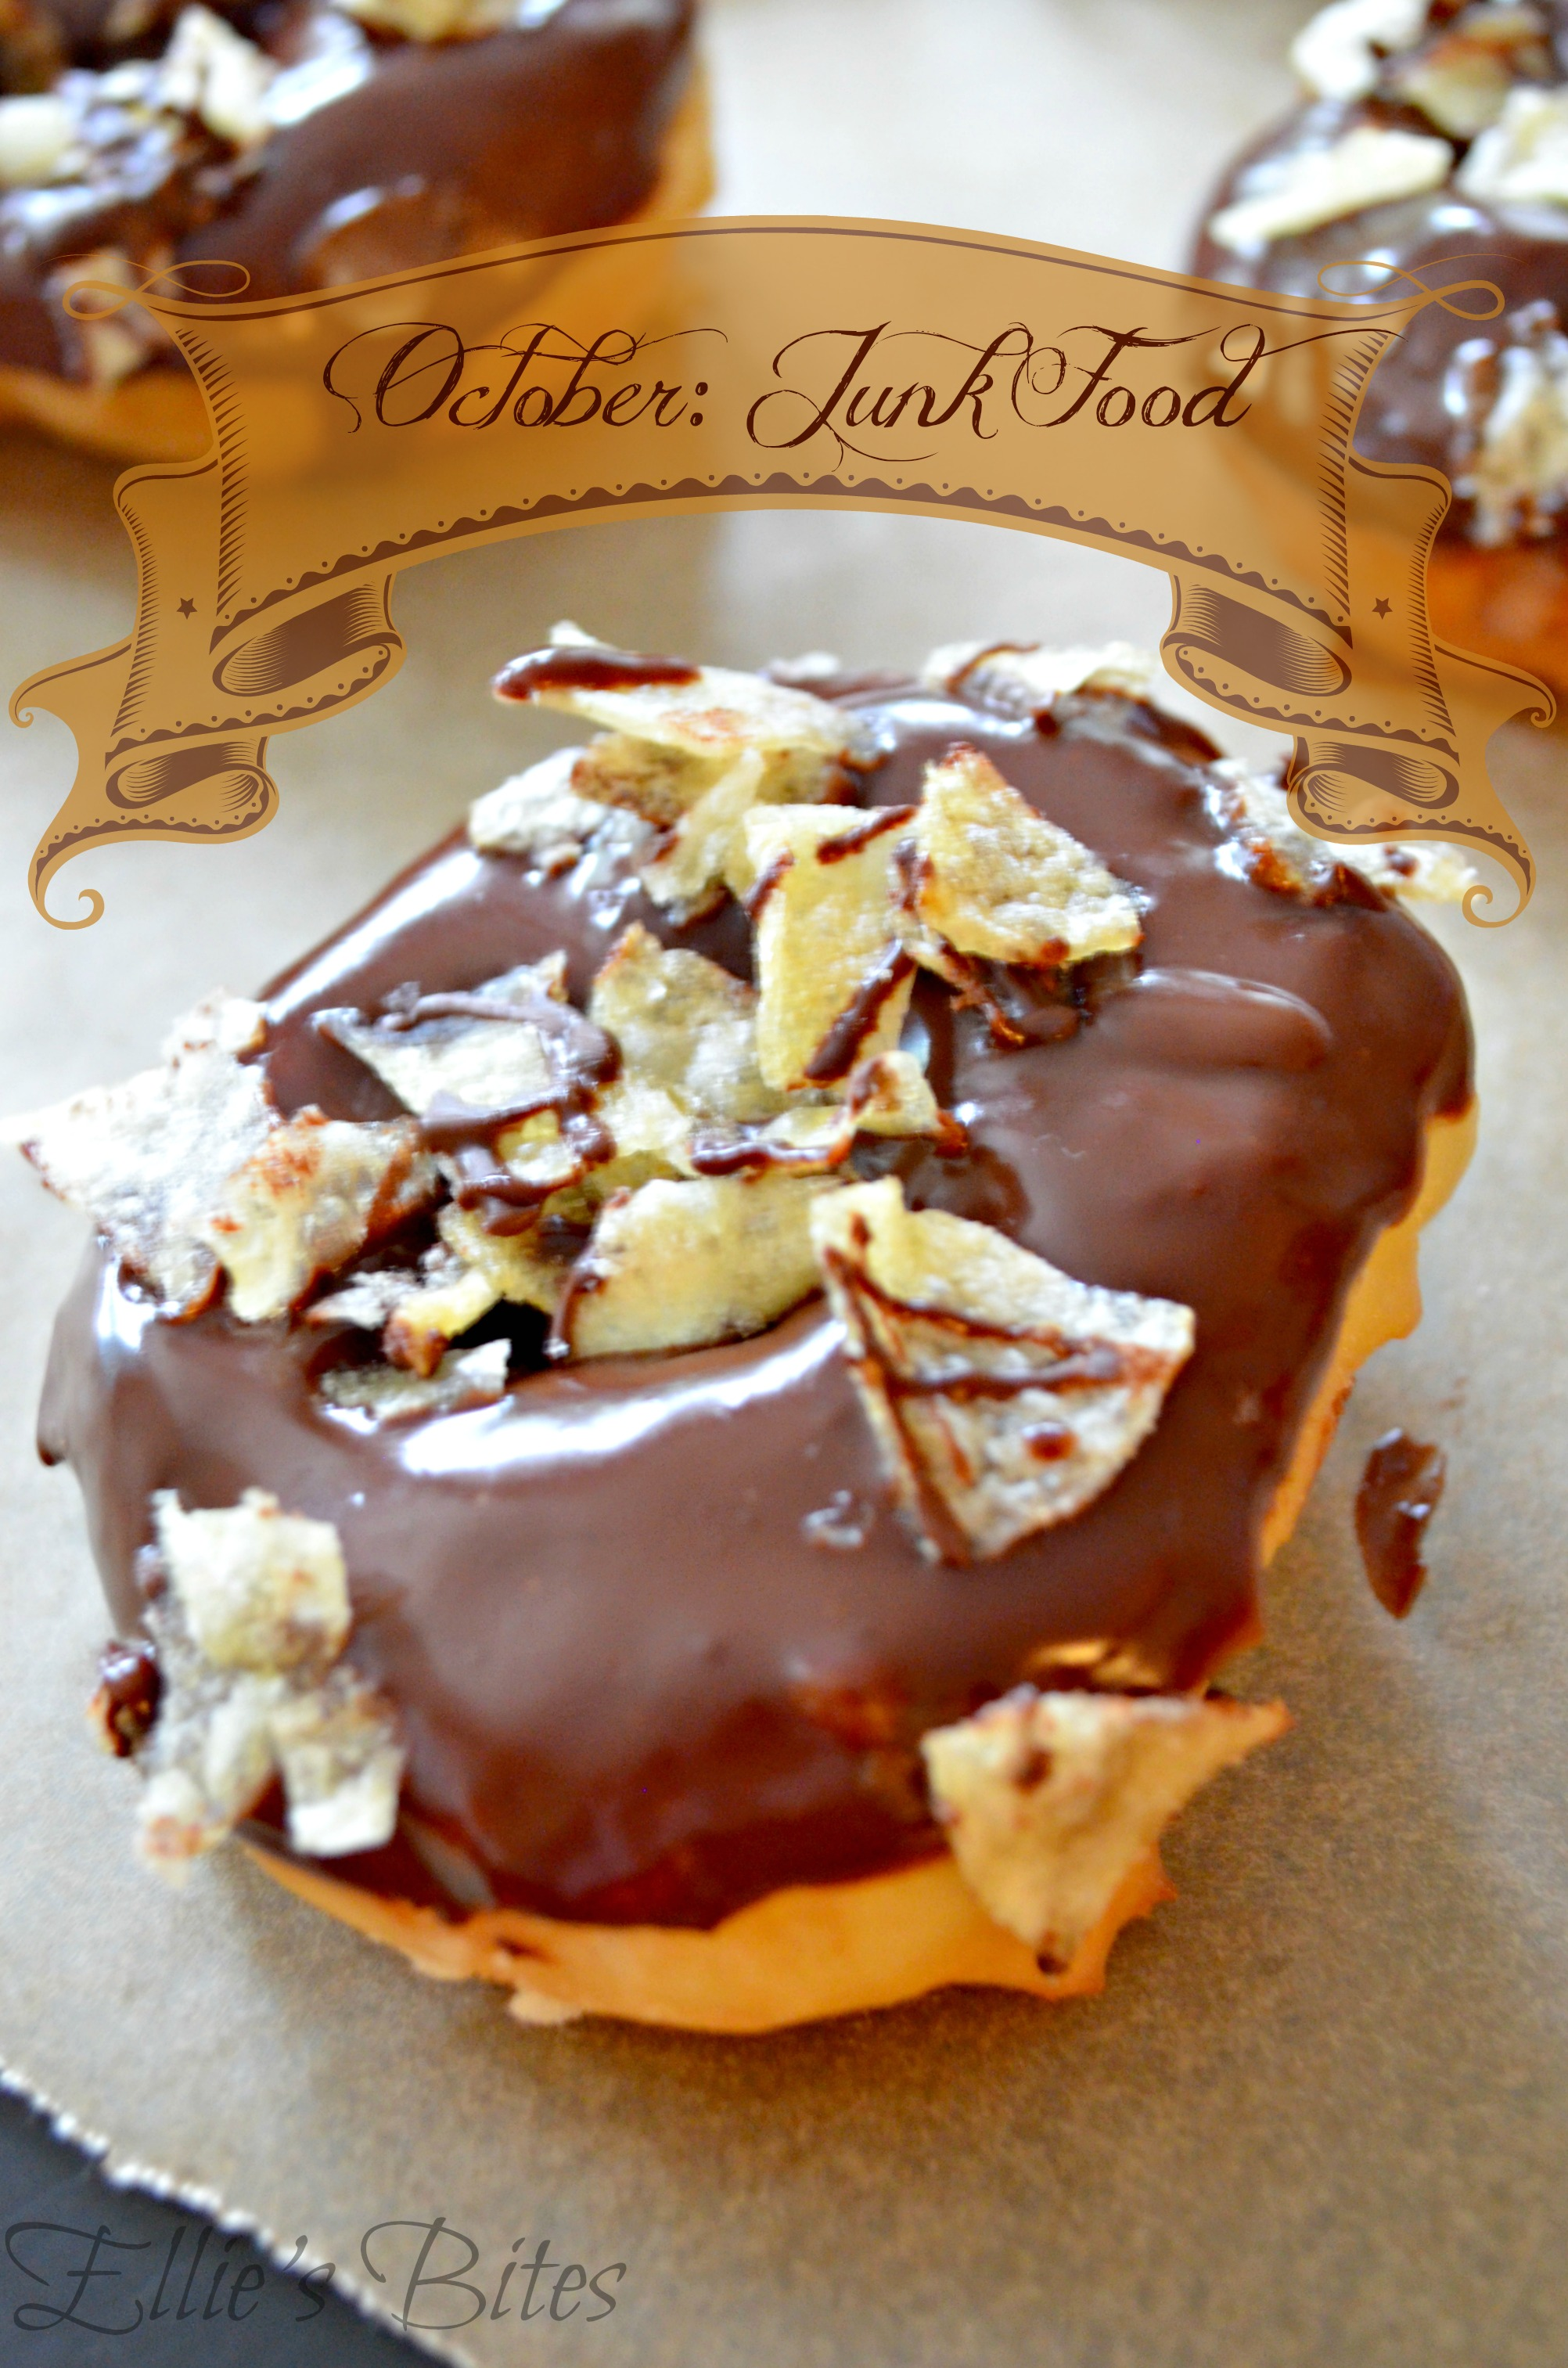 Inspiration Challenge October Junk Food Oh And A